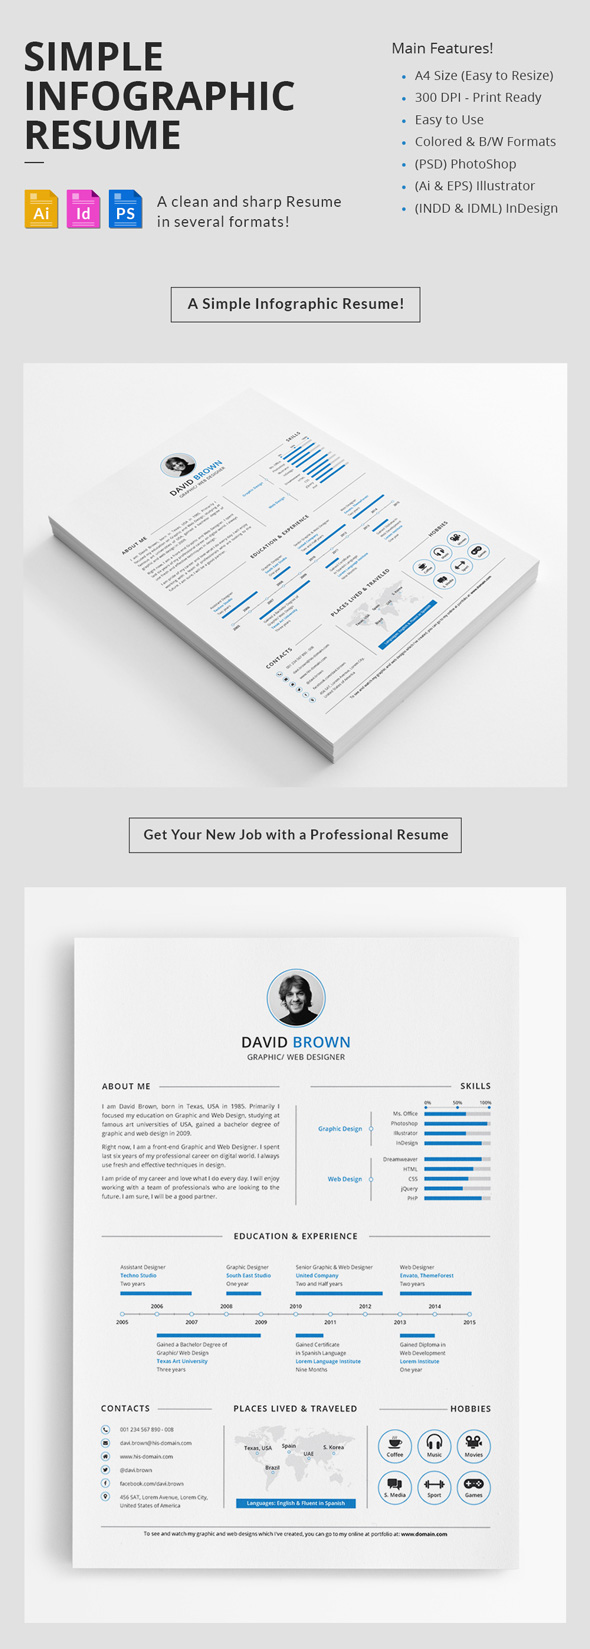 minimal resume template design - Professional Resume Formats